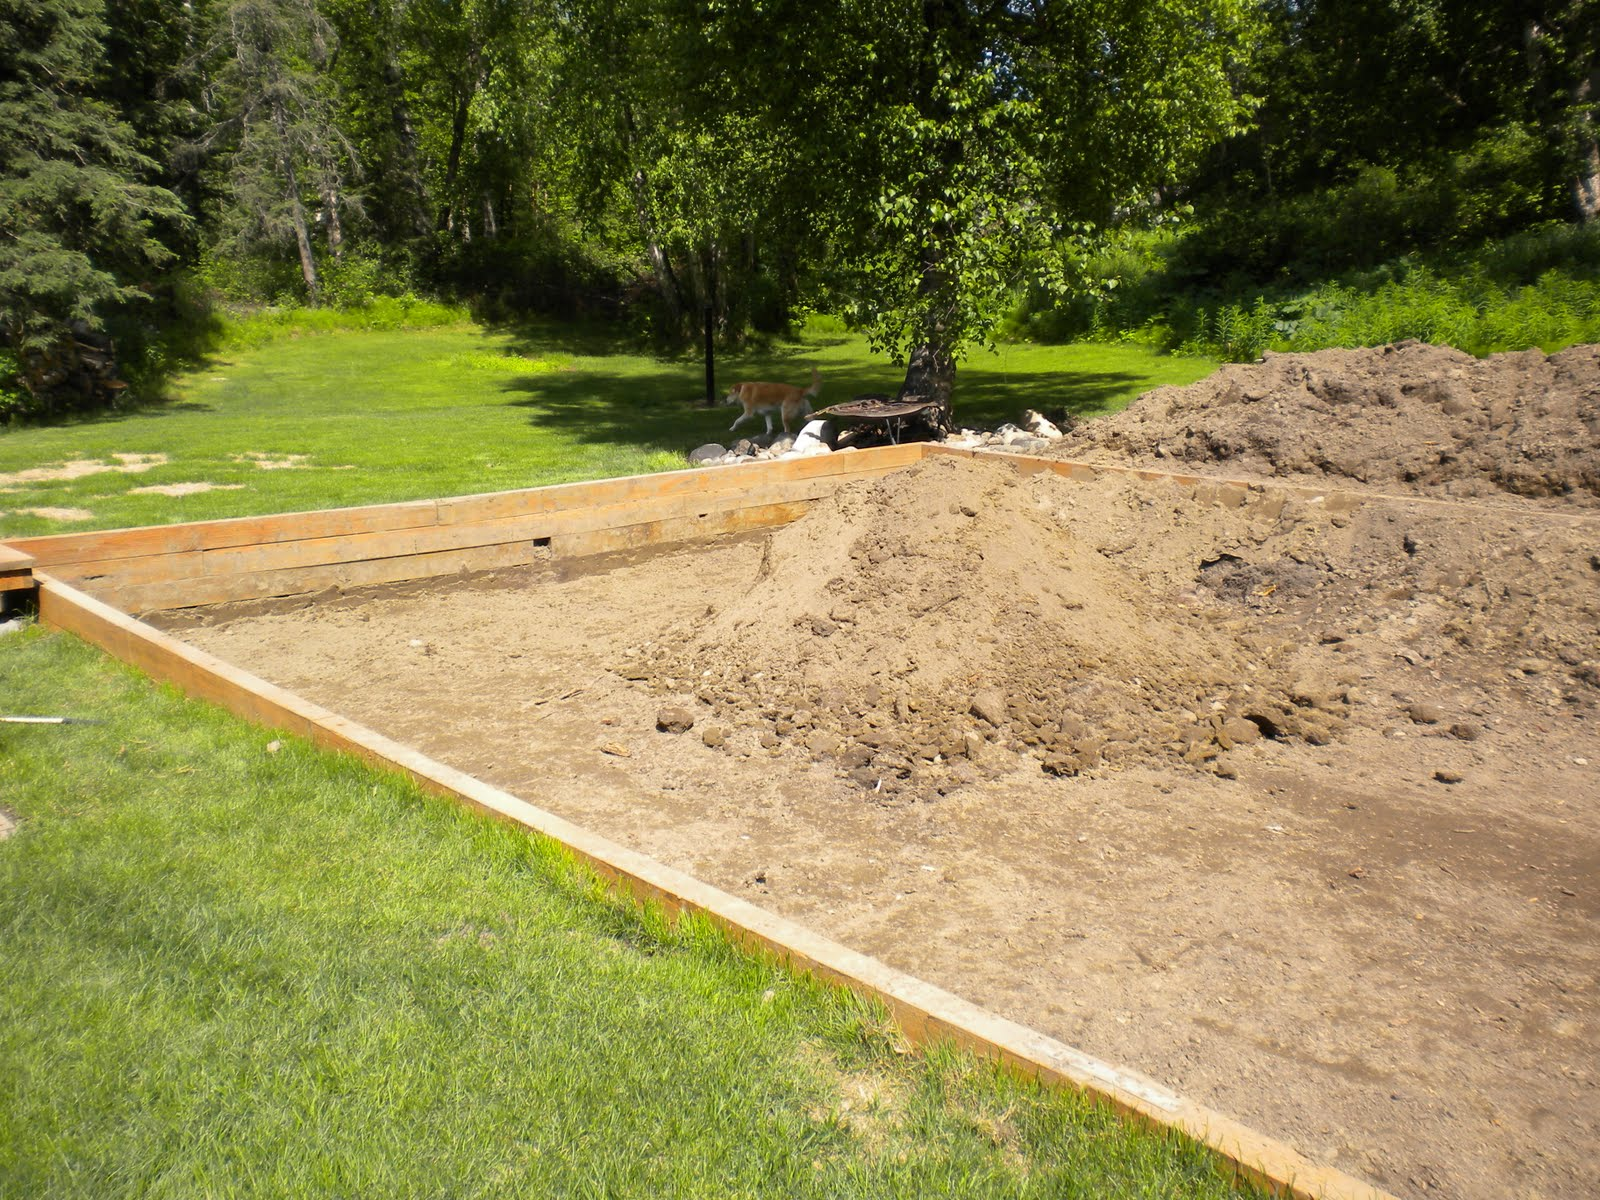 I Had Started Digging To The Right Of The Dirt Ramp We Were Using To Cart  The Material Out Of The Hole. We Continued Clockwise All Around The  Perimeter Of ...